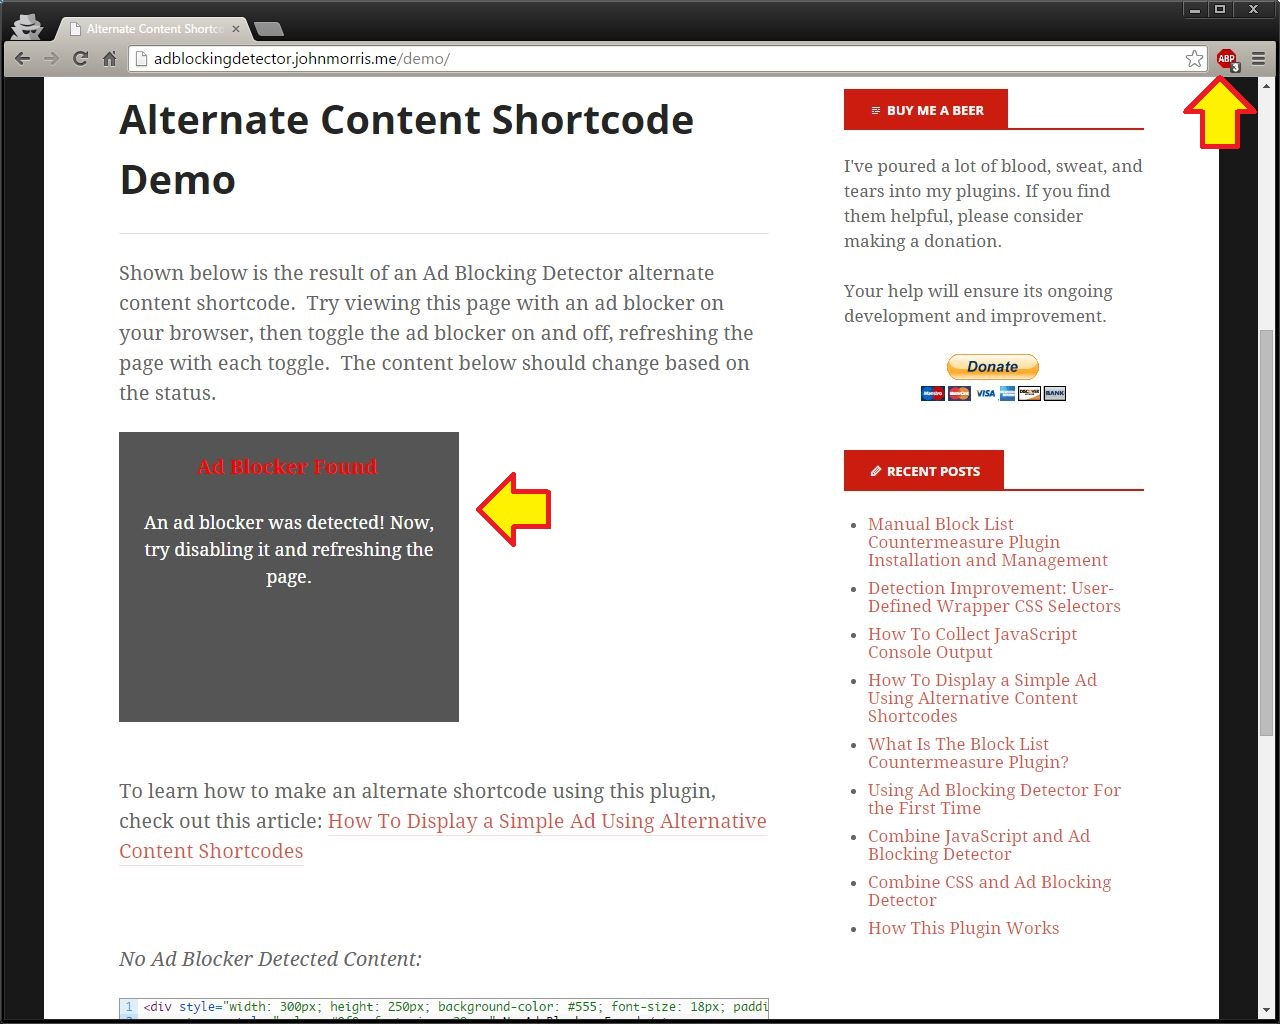 ad-blocking-detector screenshot 6